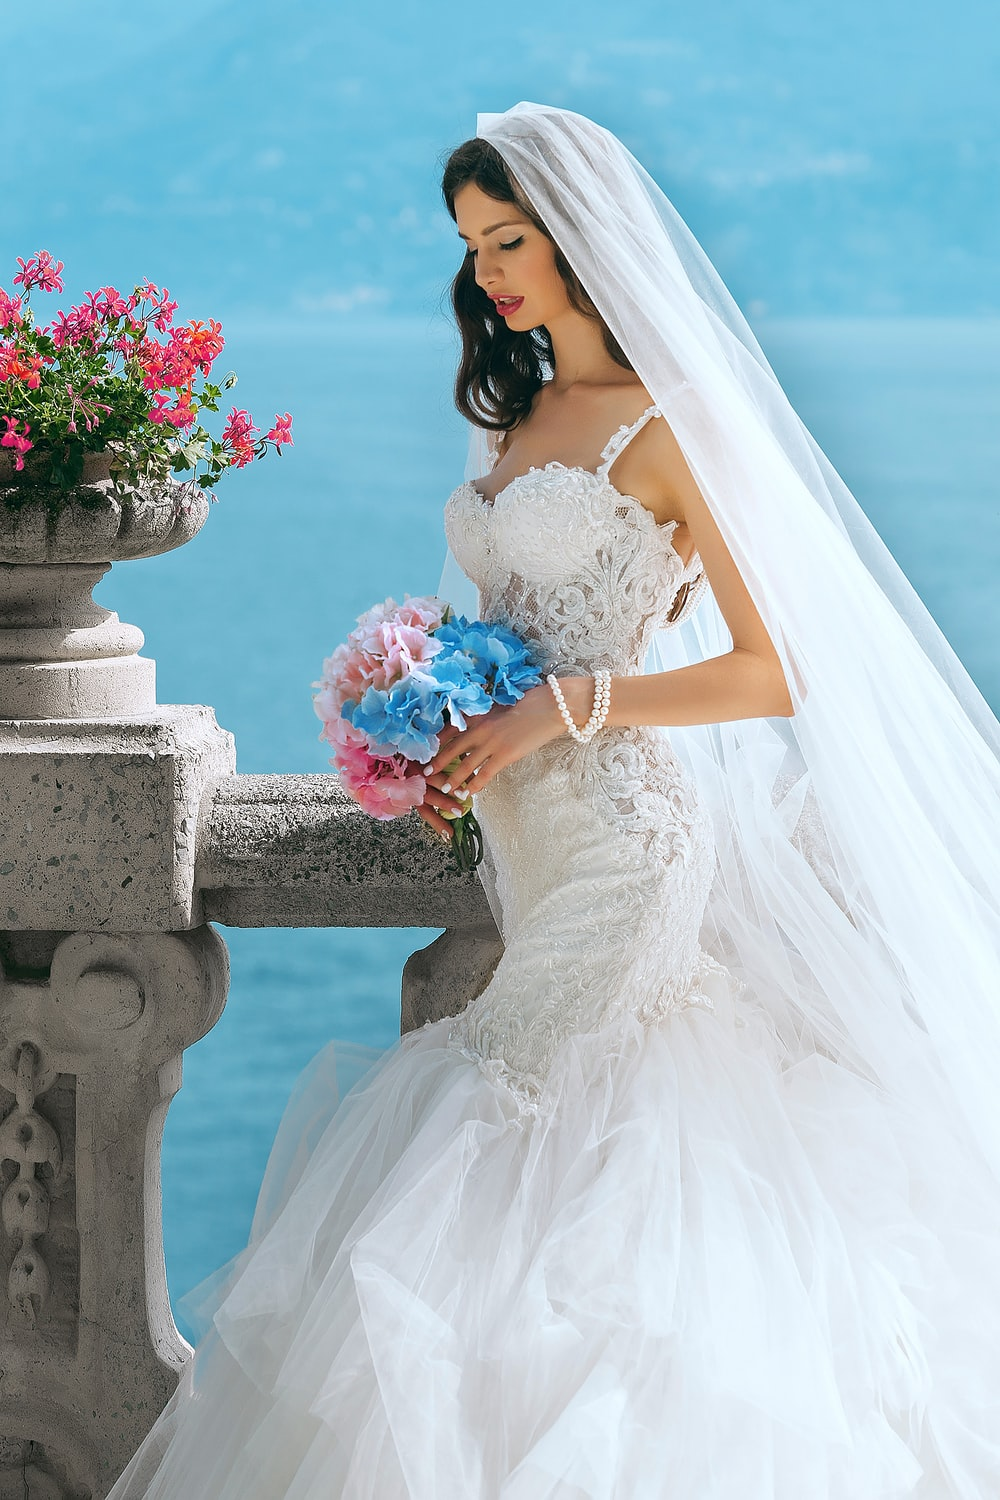 Woman In Wedding Dress While Holding Flower During Daytime Photo